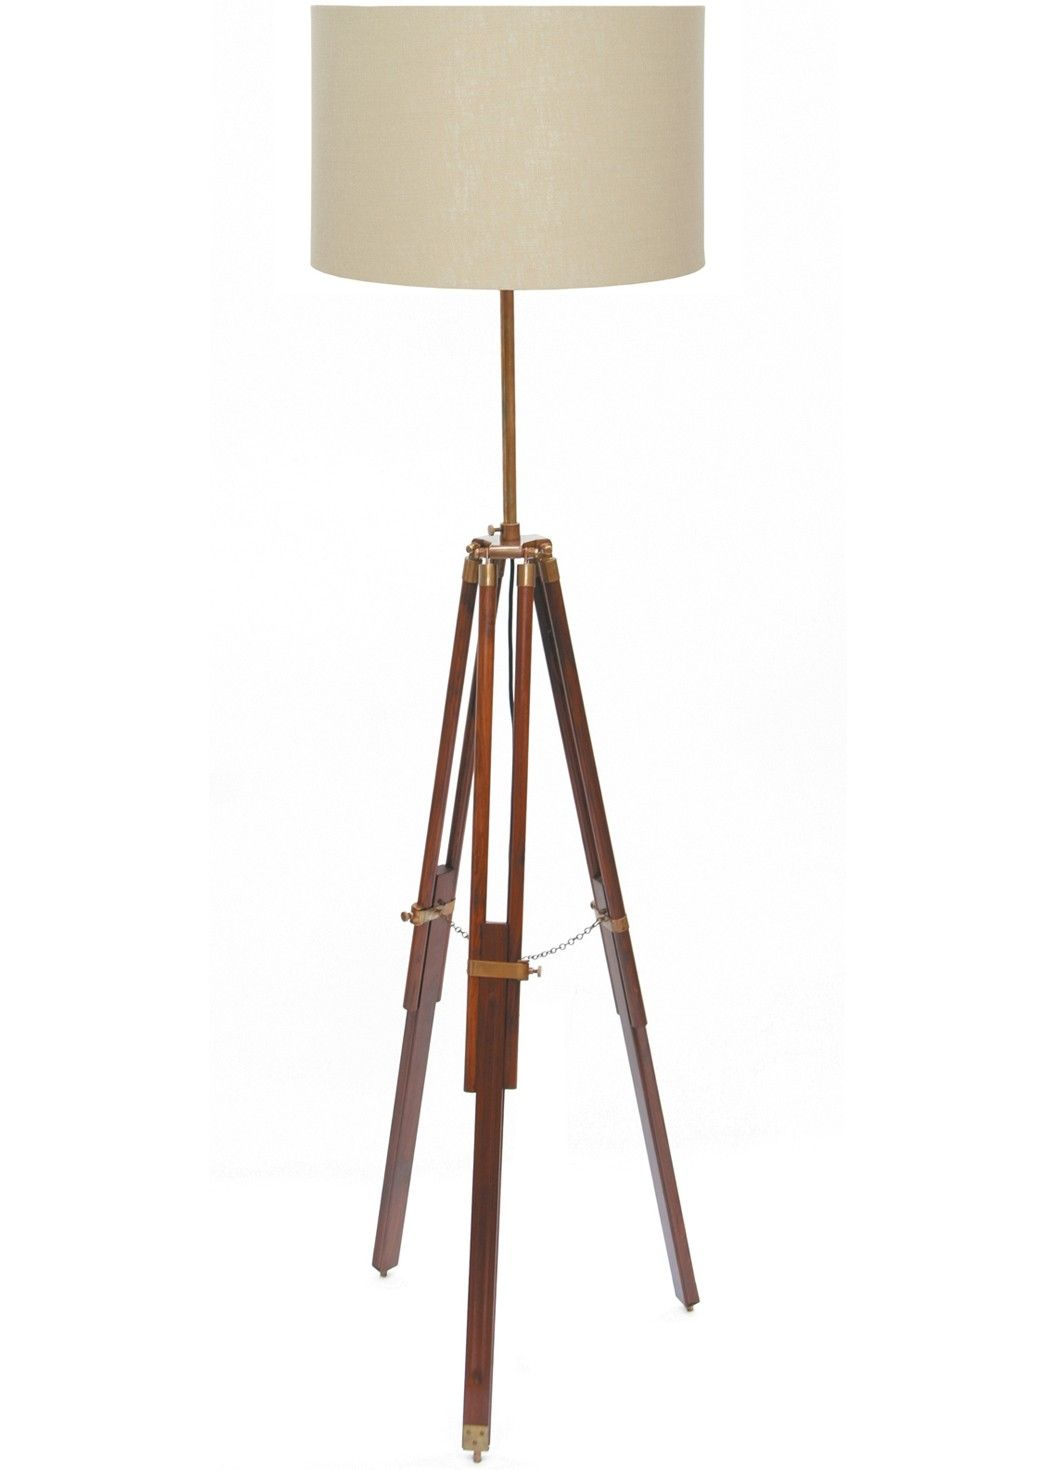 Atlas Floor Lamp Urban Barn Get Your New Accessorie Now With A